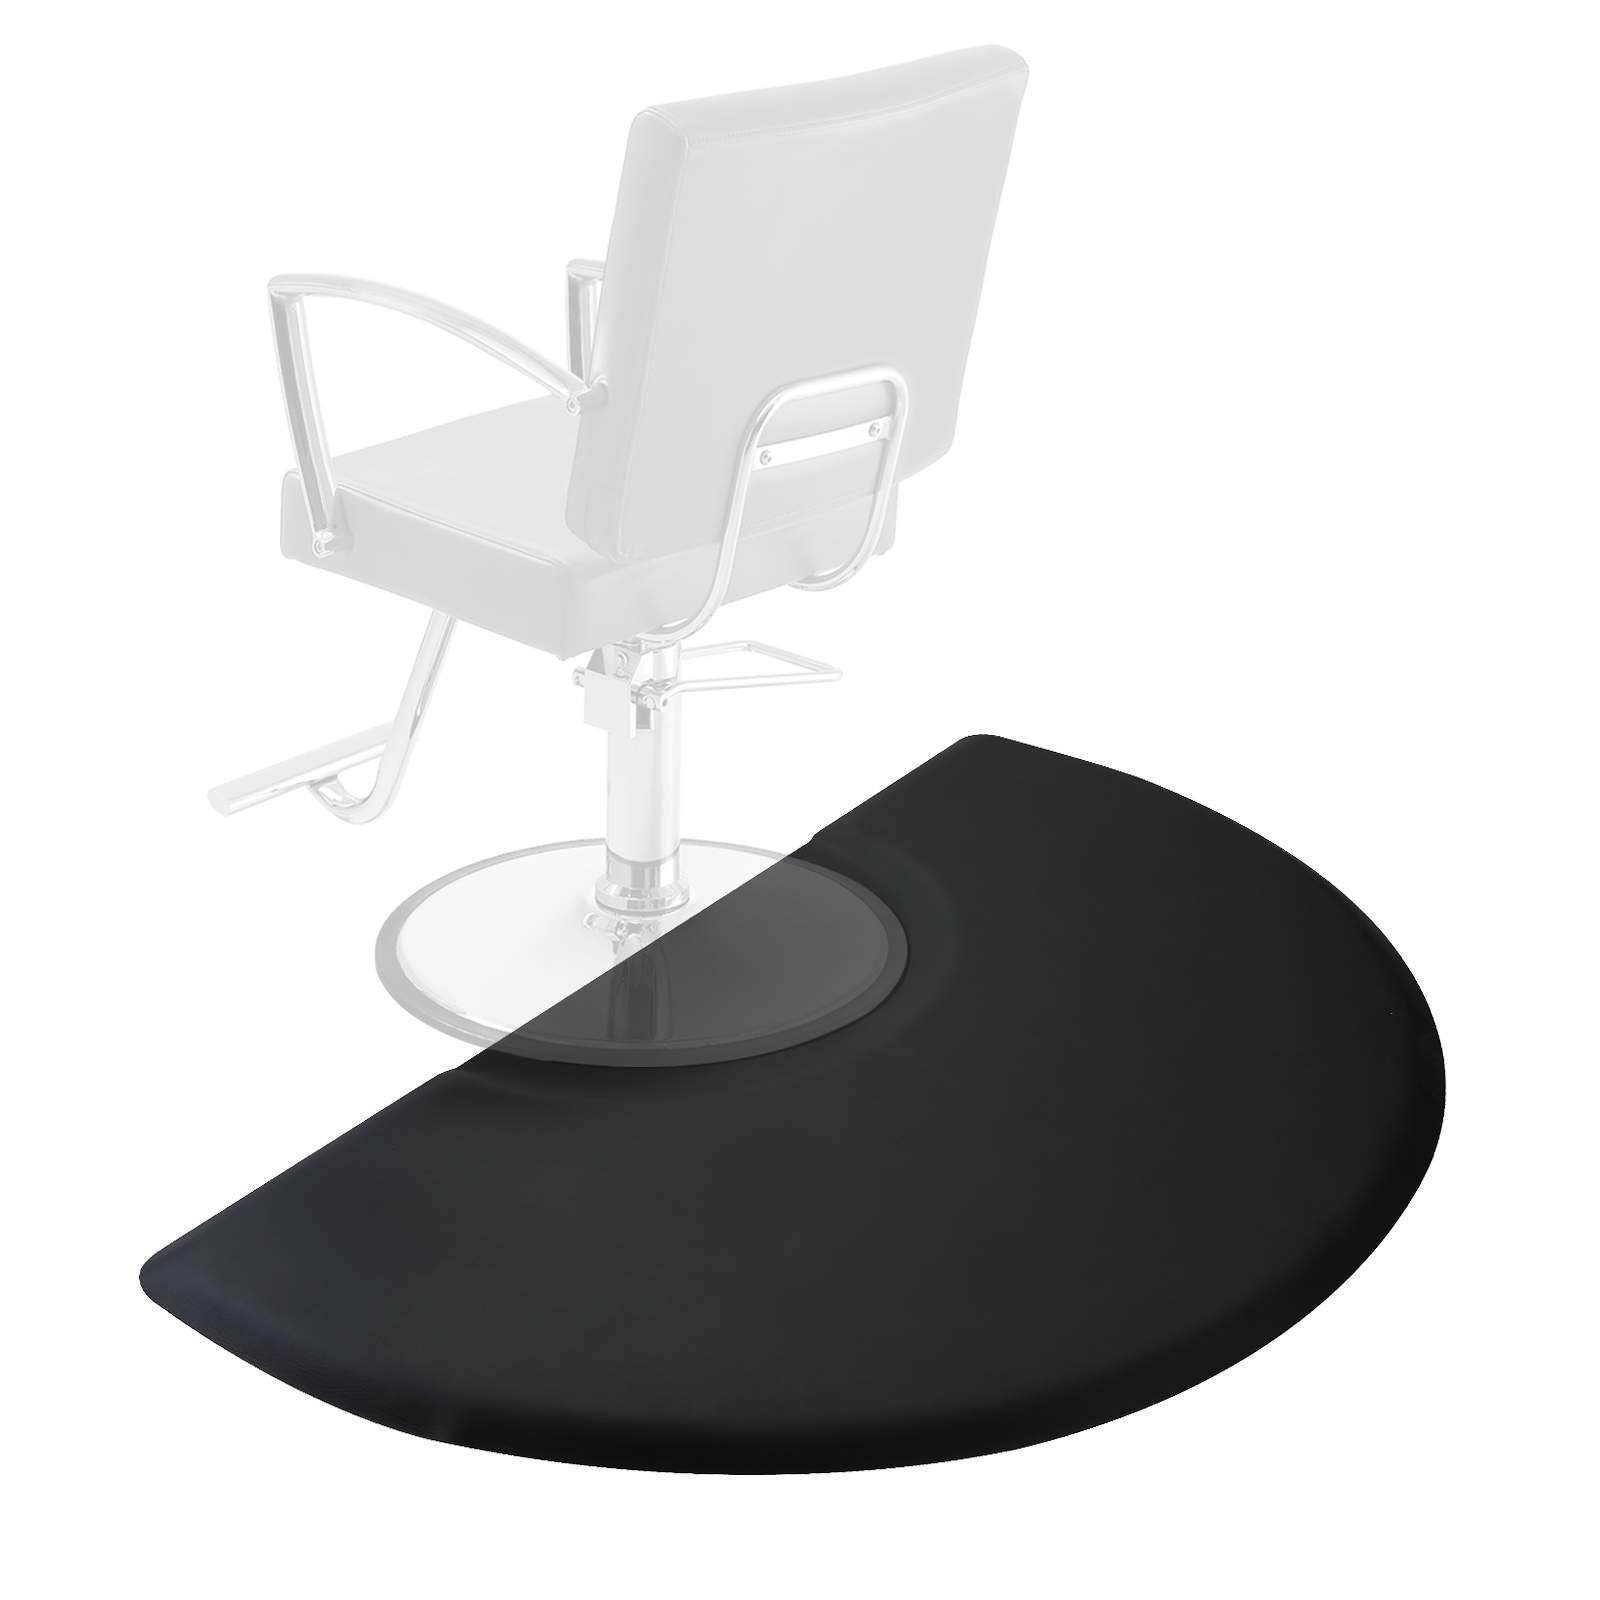 Saloniture 3 Ft X 5 Ft Salon And Barber Shop Chair Anti Fatigue Floor Mat Black Semi Circl Barber Shop Chairs Anti Fatigue Floor Mats Anti Fatigue Flooring